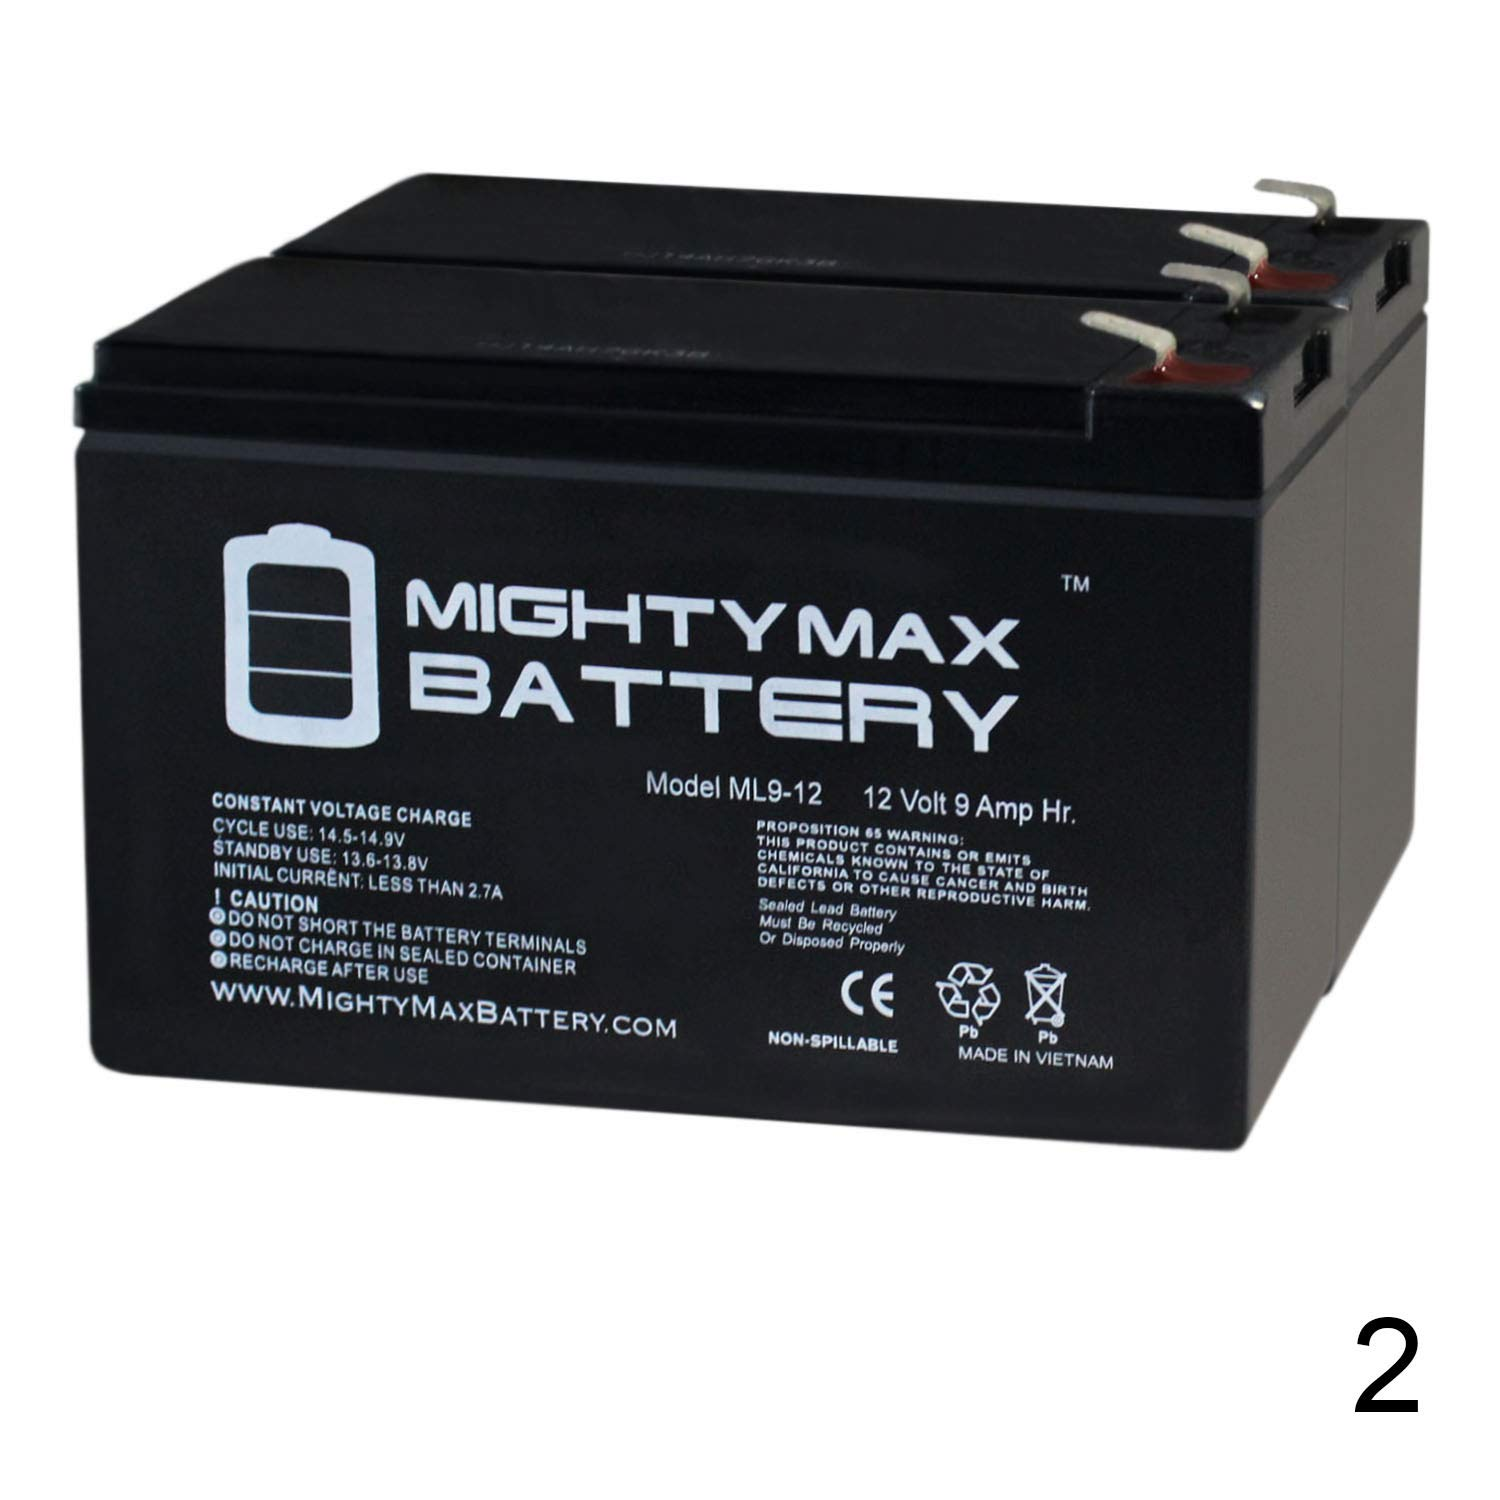 Mighty Max Battery 12V 9AH Replacement for Razor Pocket Mod Electric Scooter - 2 Pack Brand Product by Mighty Max Battery